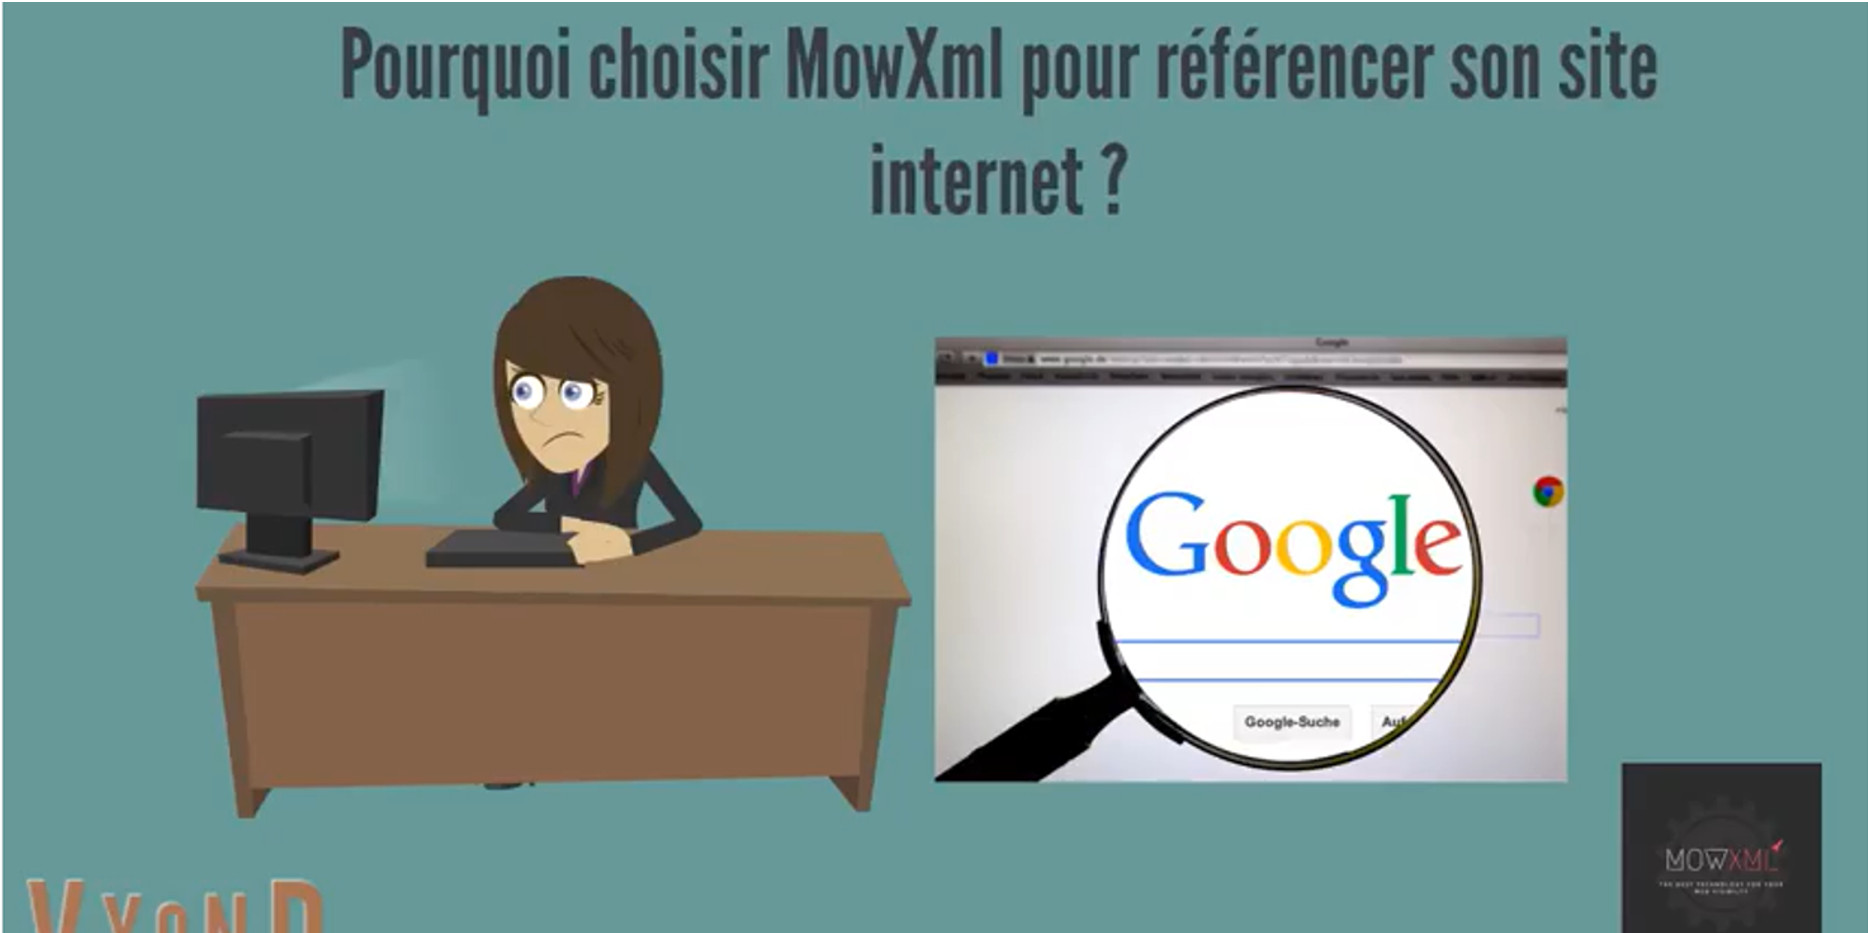 MowXml communauté de webmasters, webdesigners, création de sites web, creation de sites internet, création sites web, Google Adwords, Visite Virtuelles MSV, Création sites web, création de site web, creation de site web, création site web, Création site